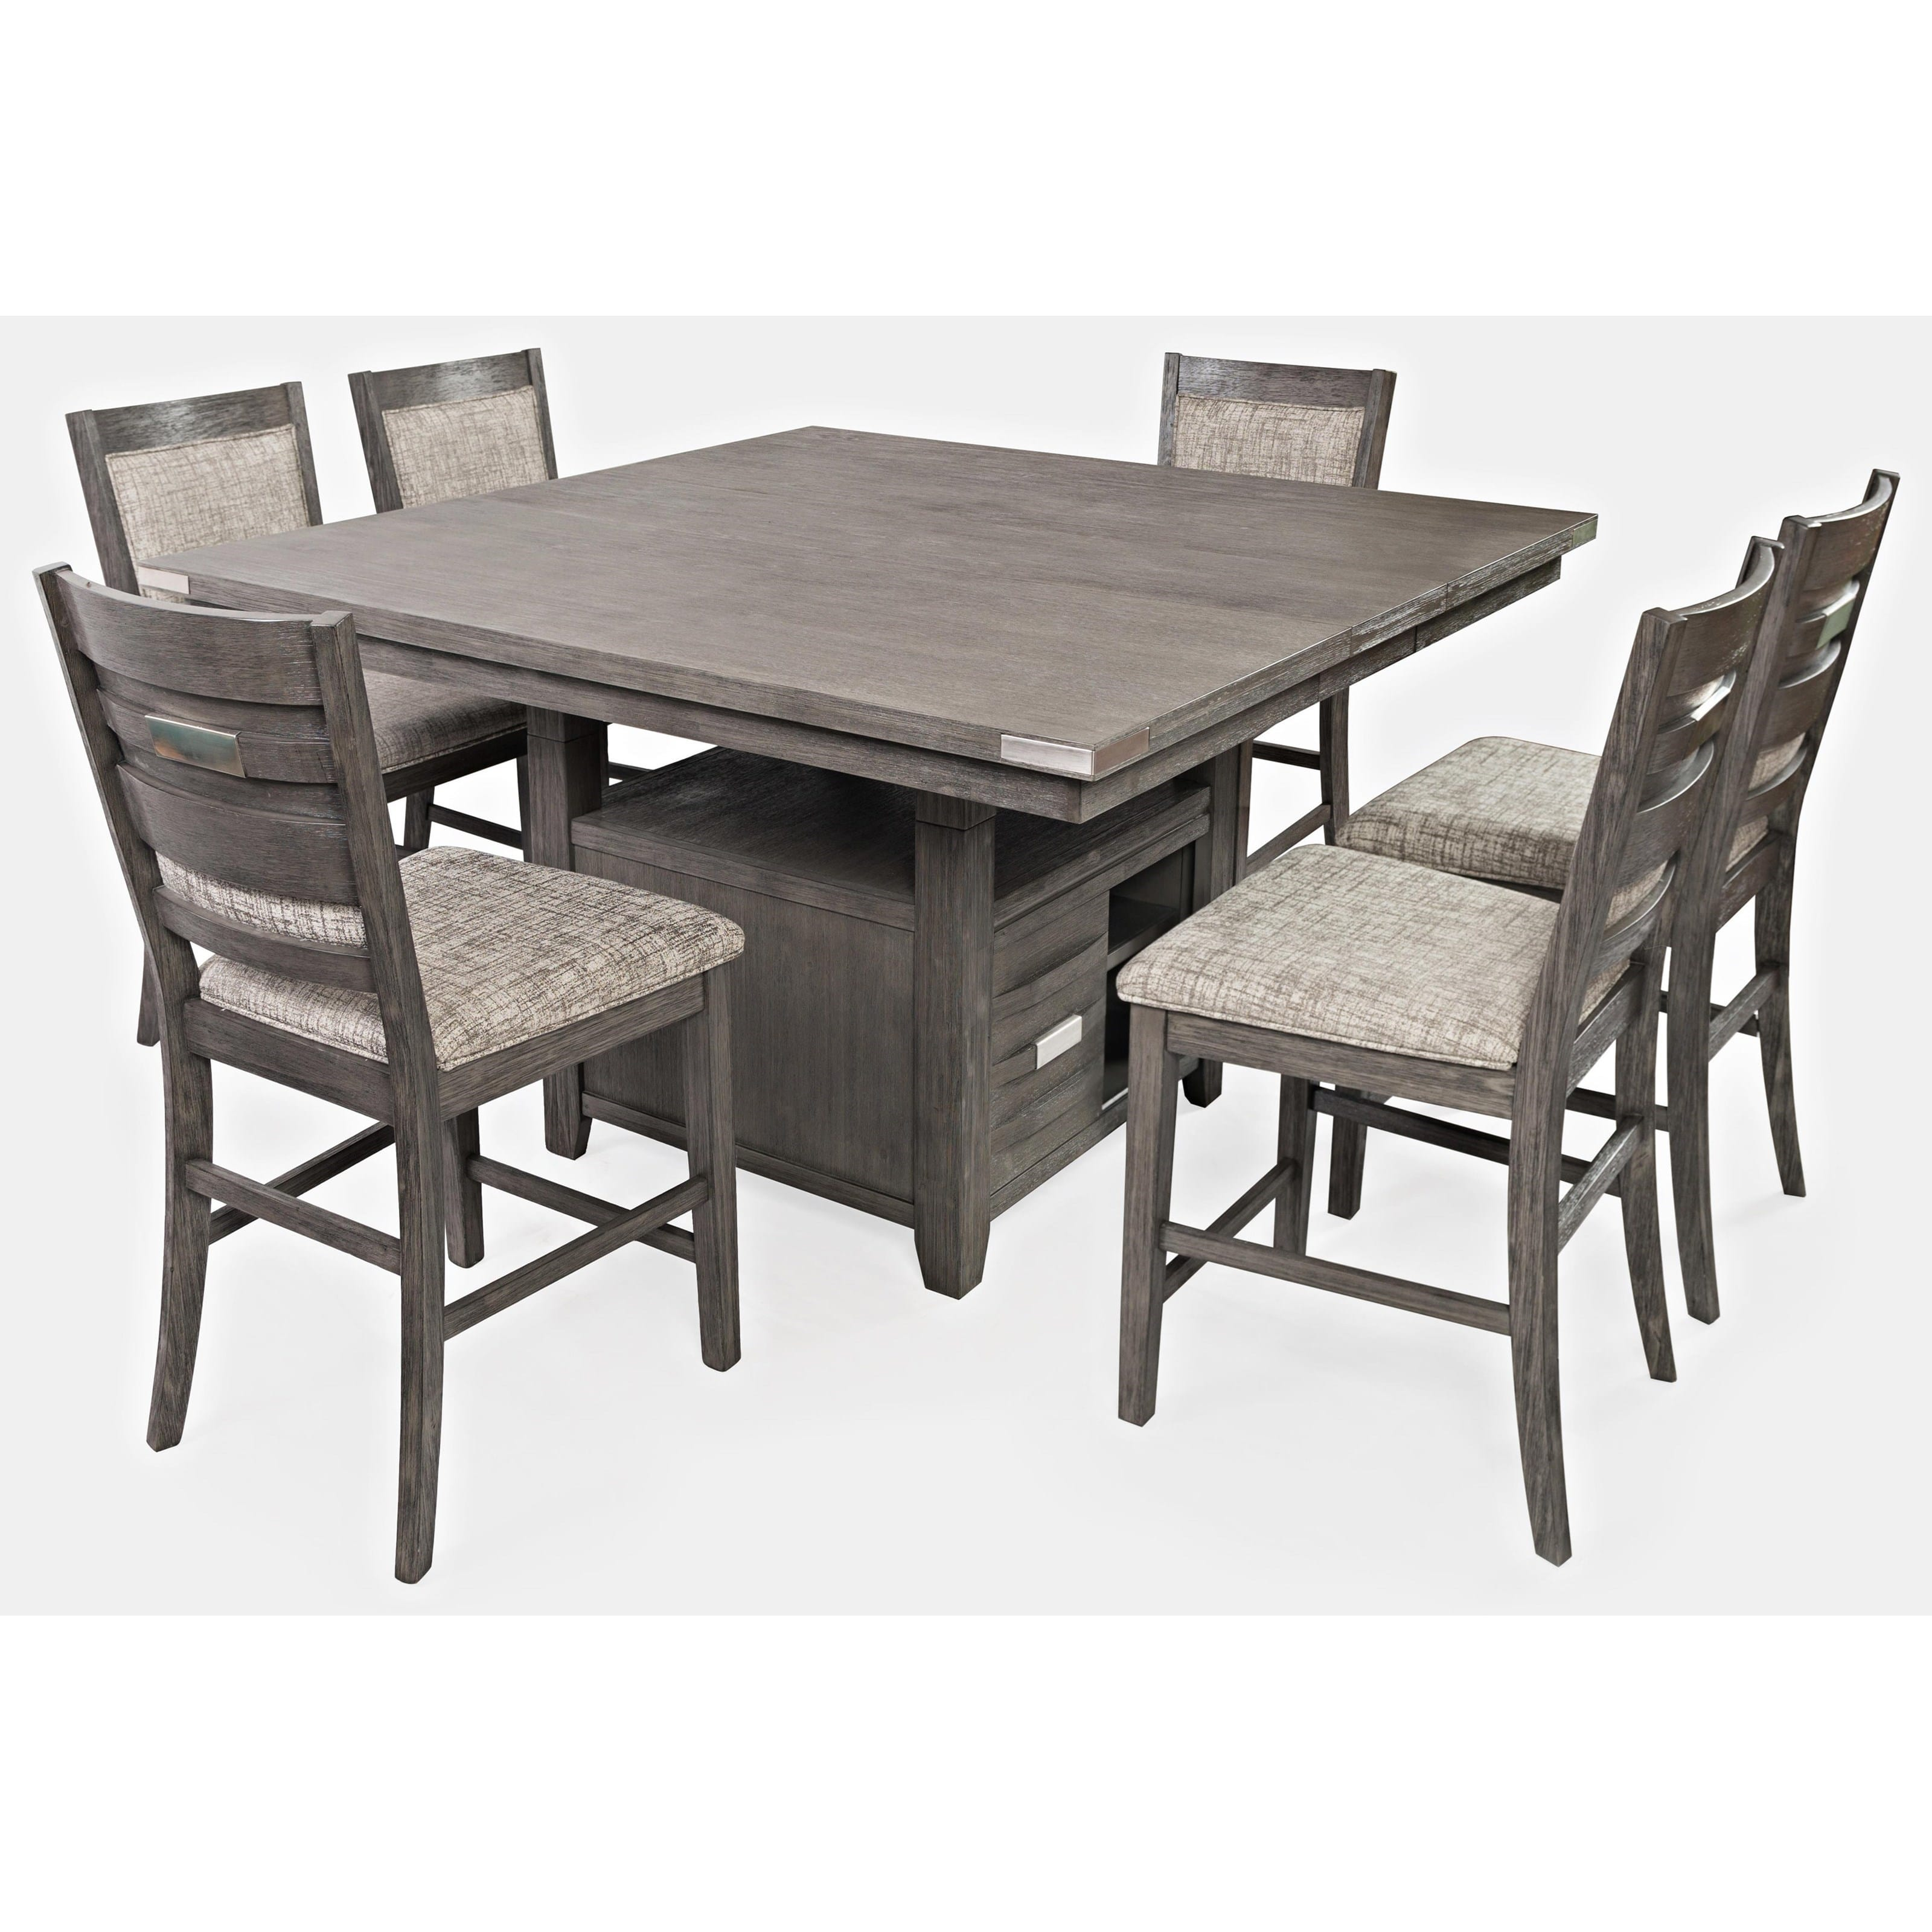 Altamonte Grey Wood Square Dining Table W Storage Base By Jofran Furniture